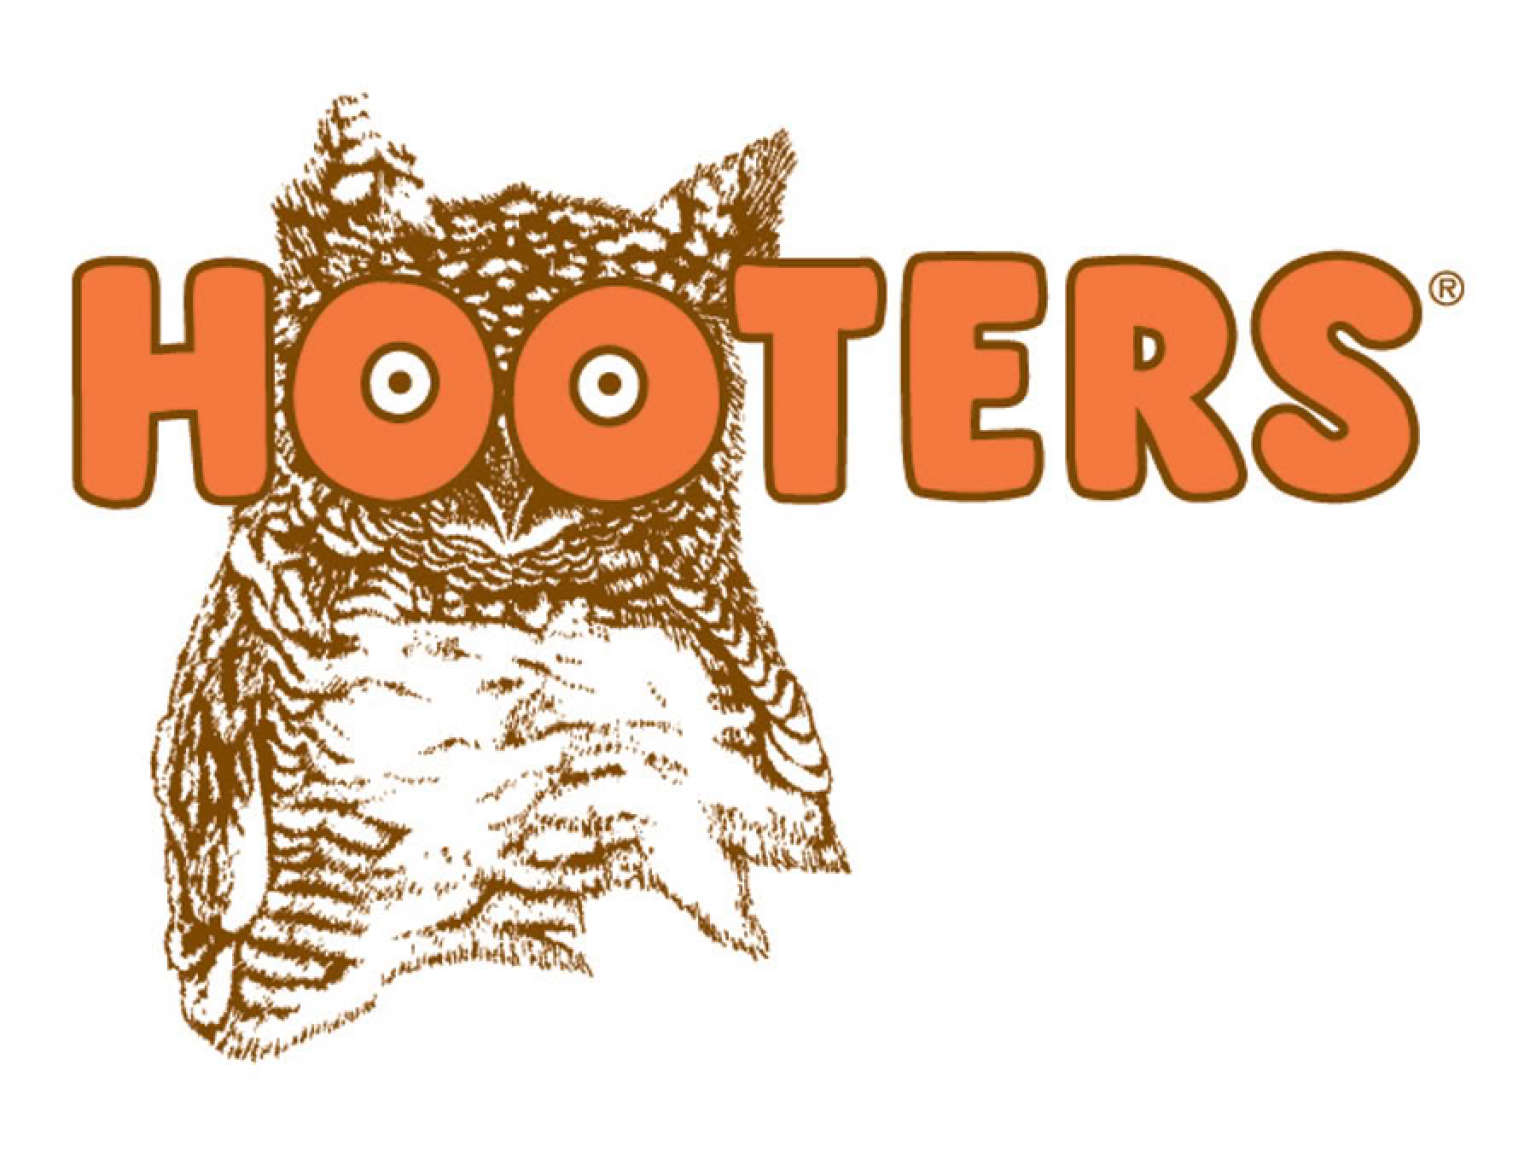 Old Hooters Logo